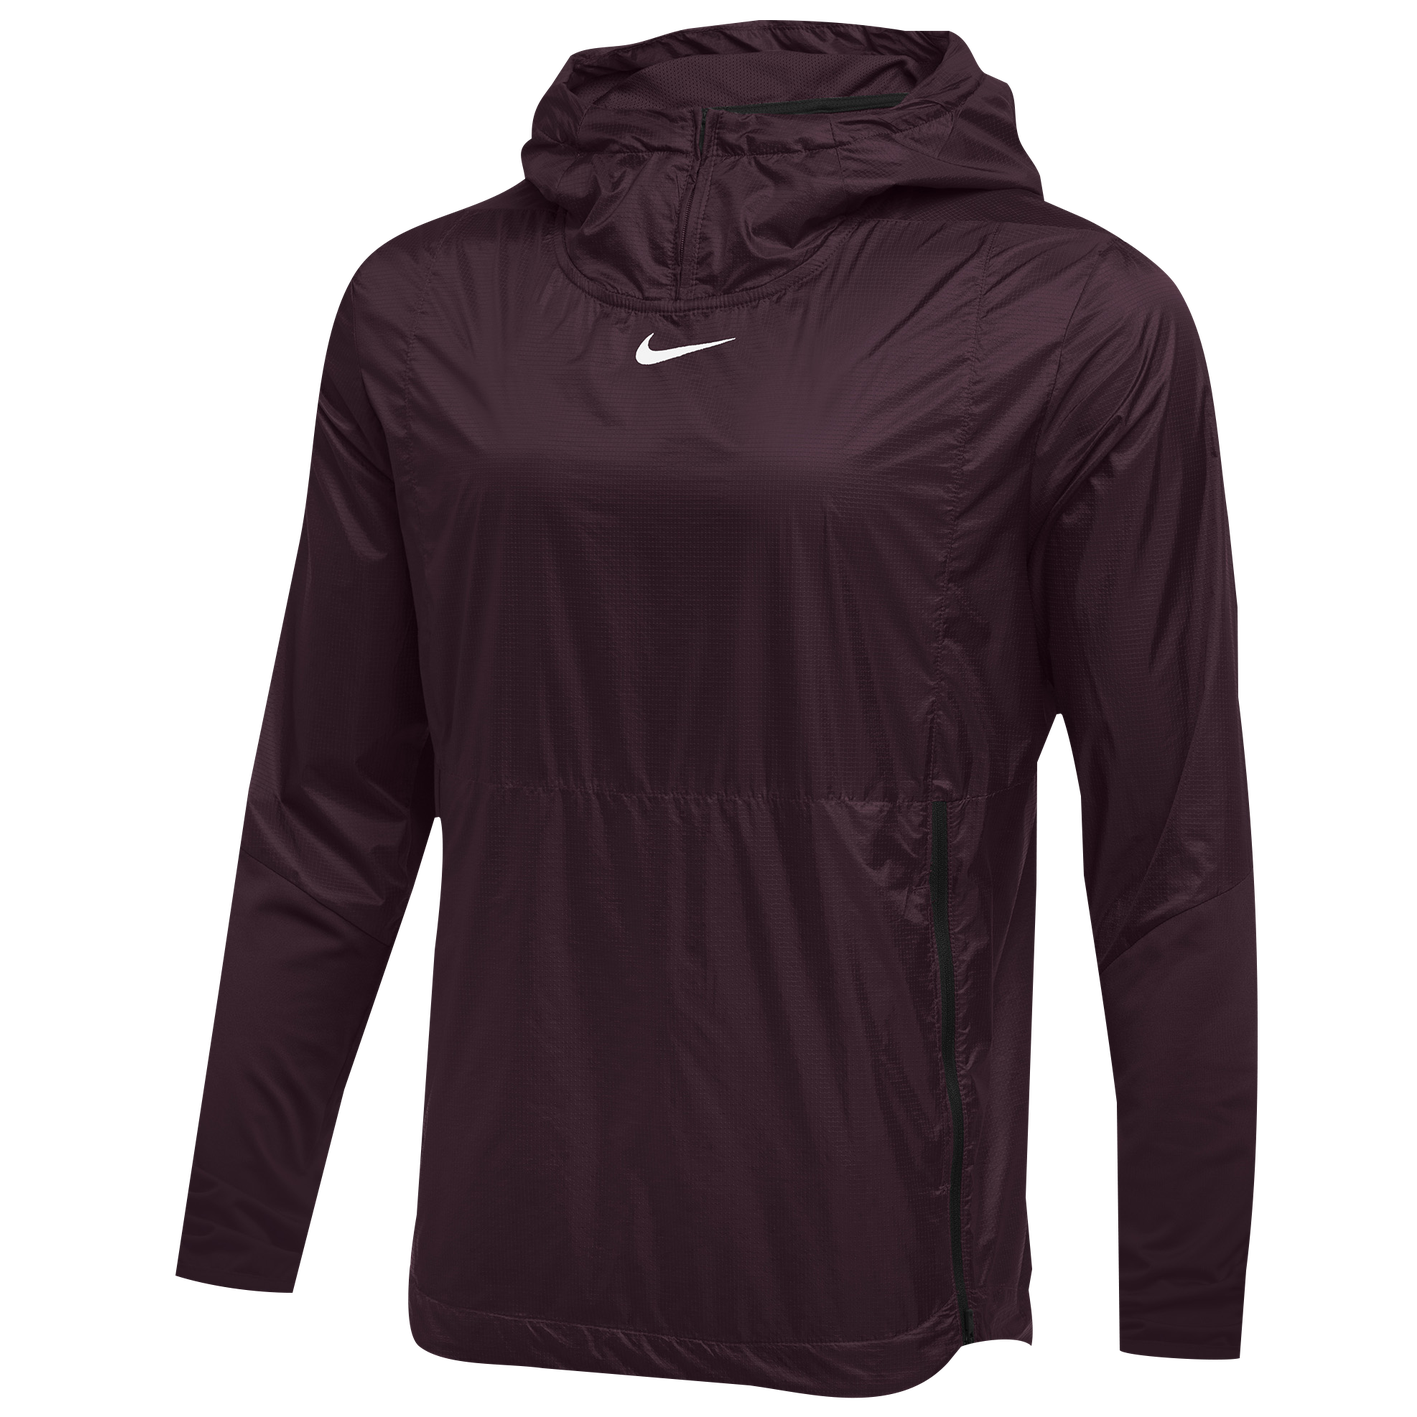 878b9ac33dfc Nike Team Authentic Lightweight Fly Rush Jacket - Men s - For All ...